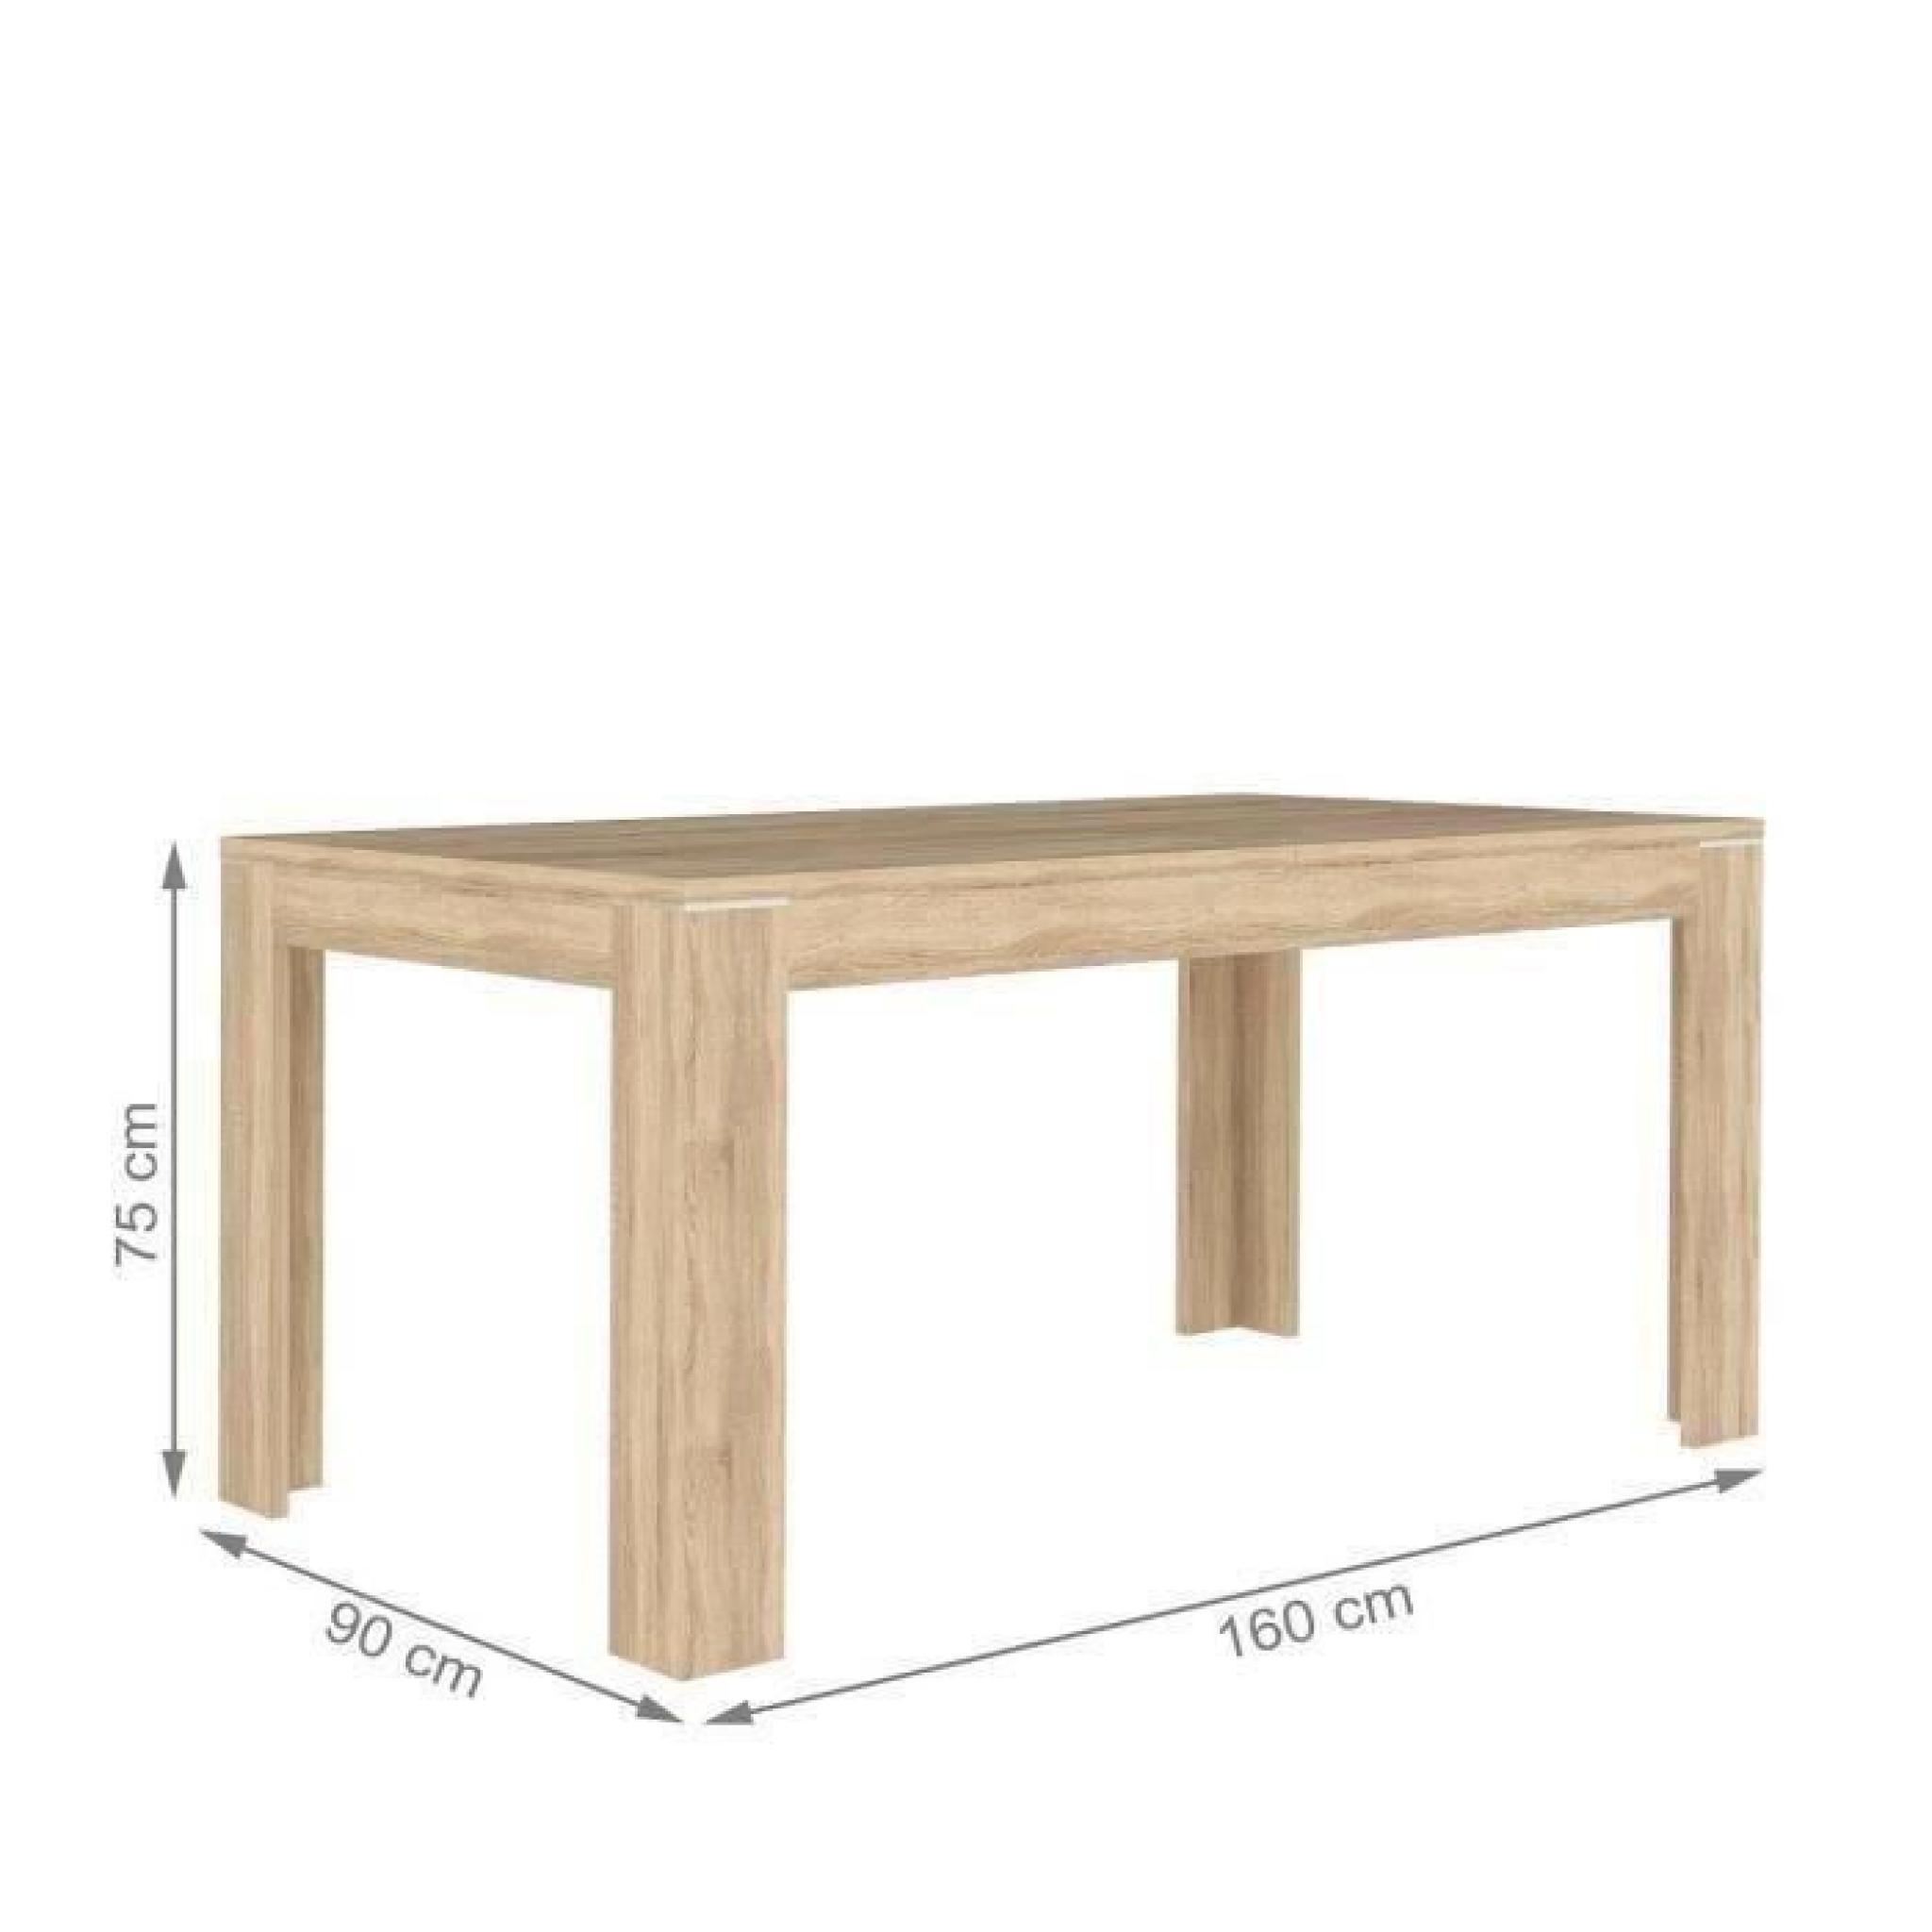 Table salle a manger extensible pas cher maison design for Table ovale extensible pas cher